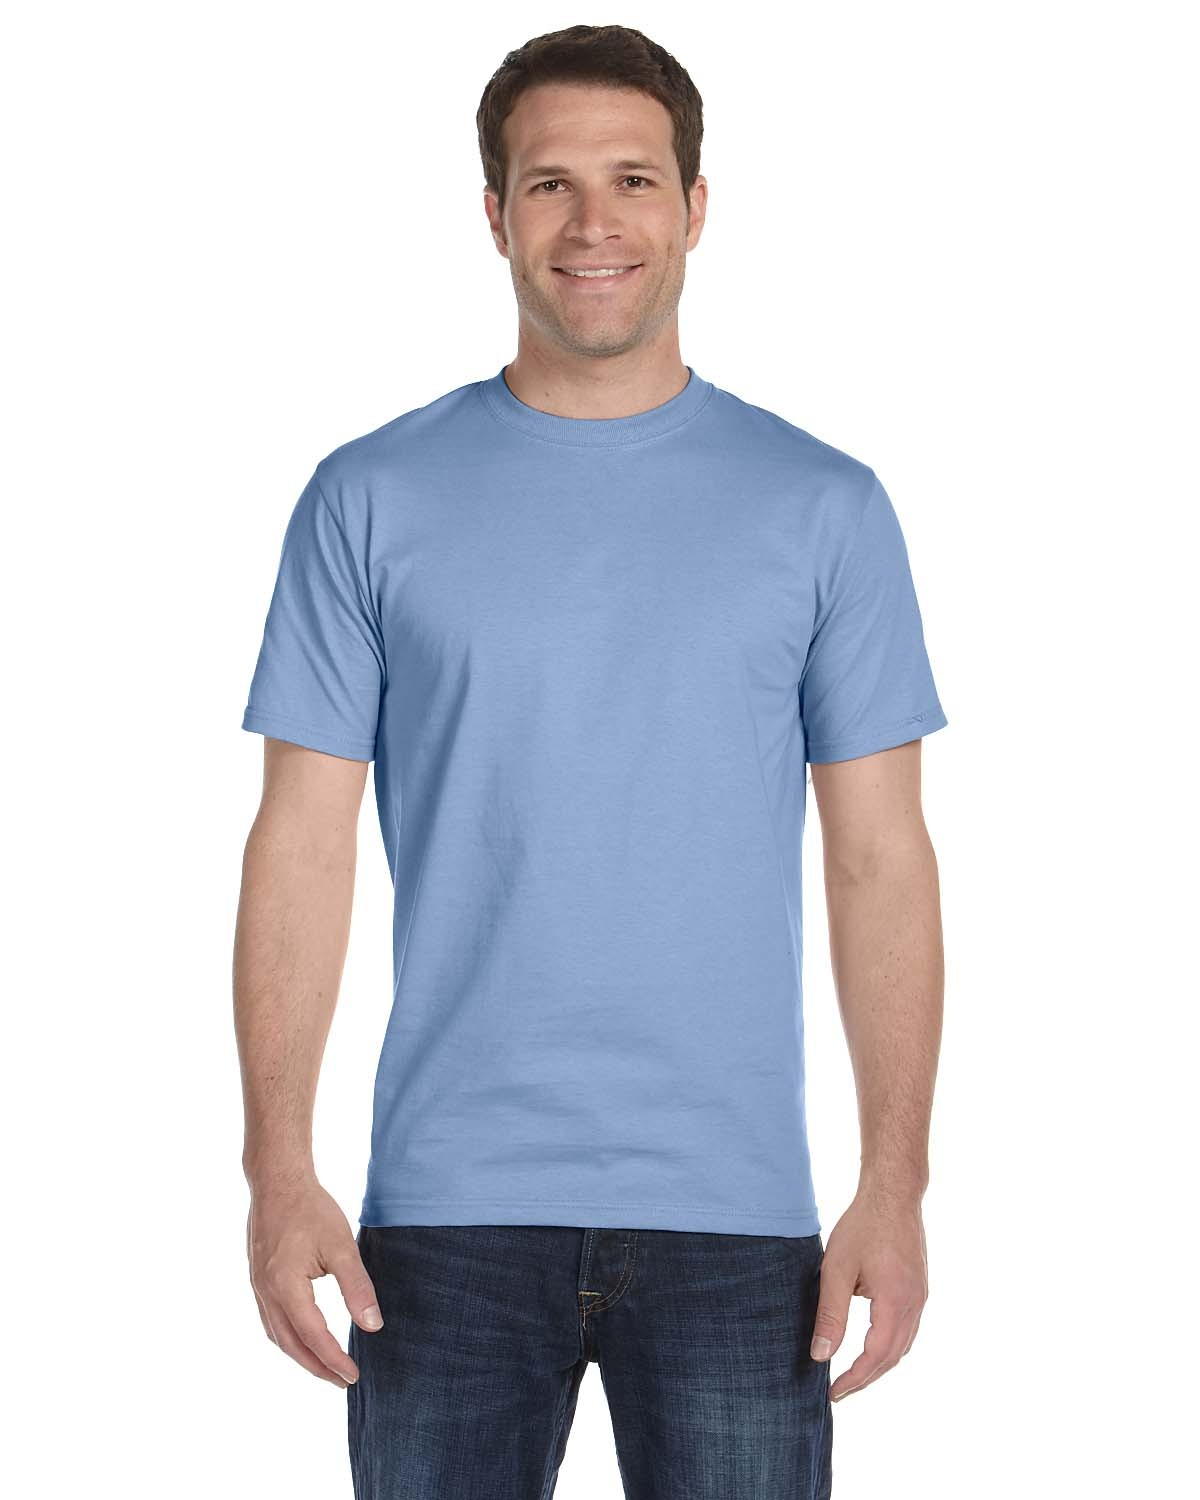 5180 Hanes LIGHT BLUE